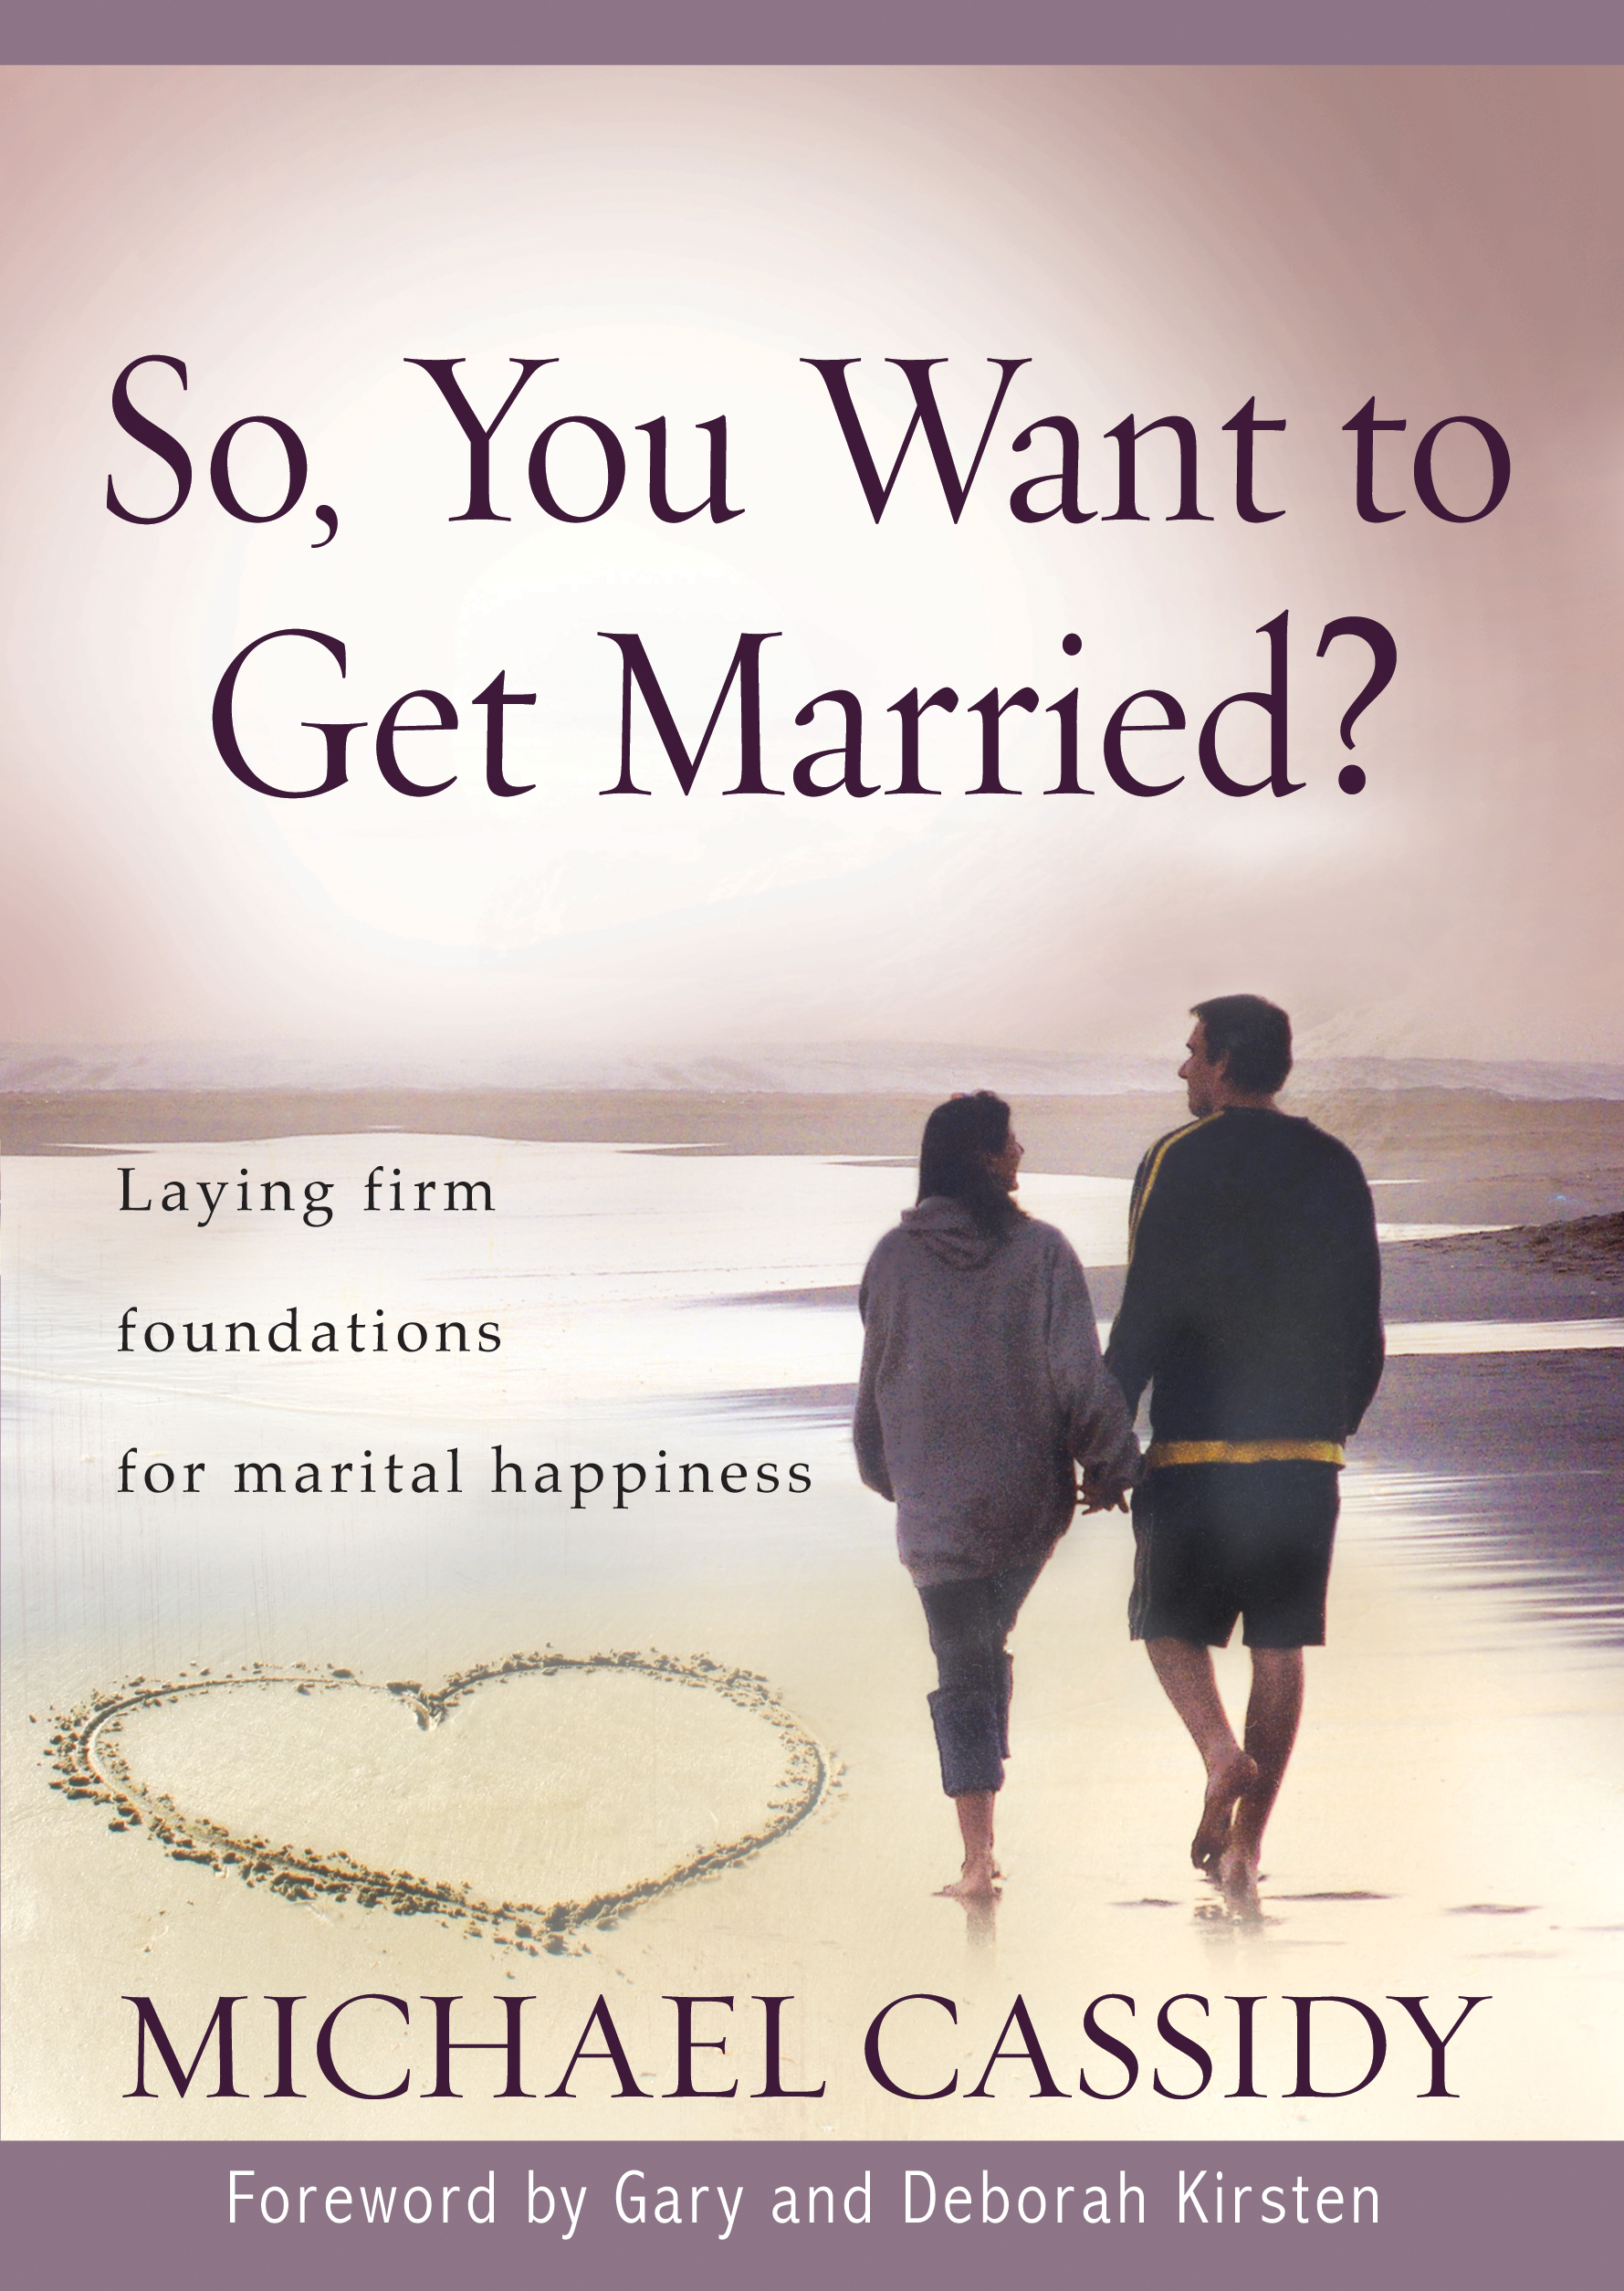 So, You Want to Get Married? (eBook)